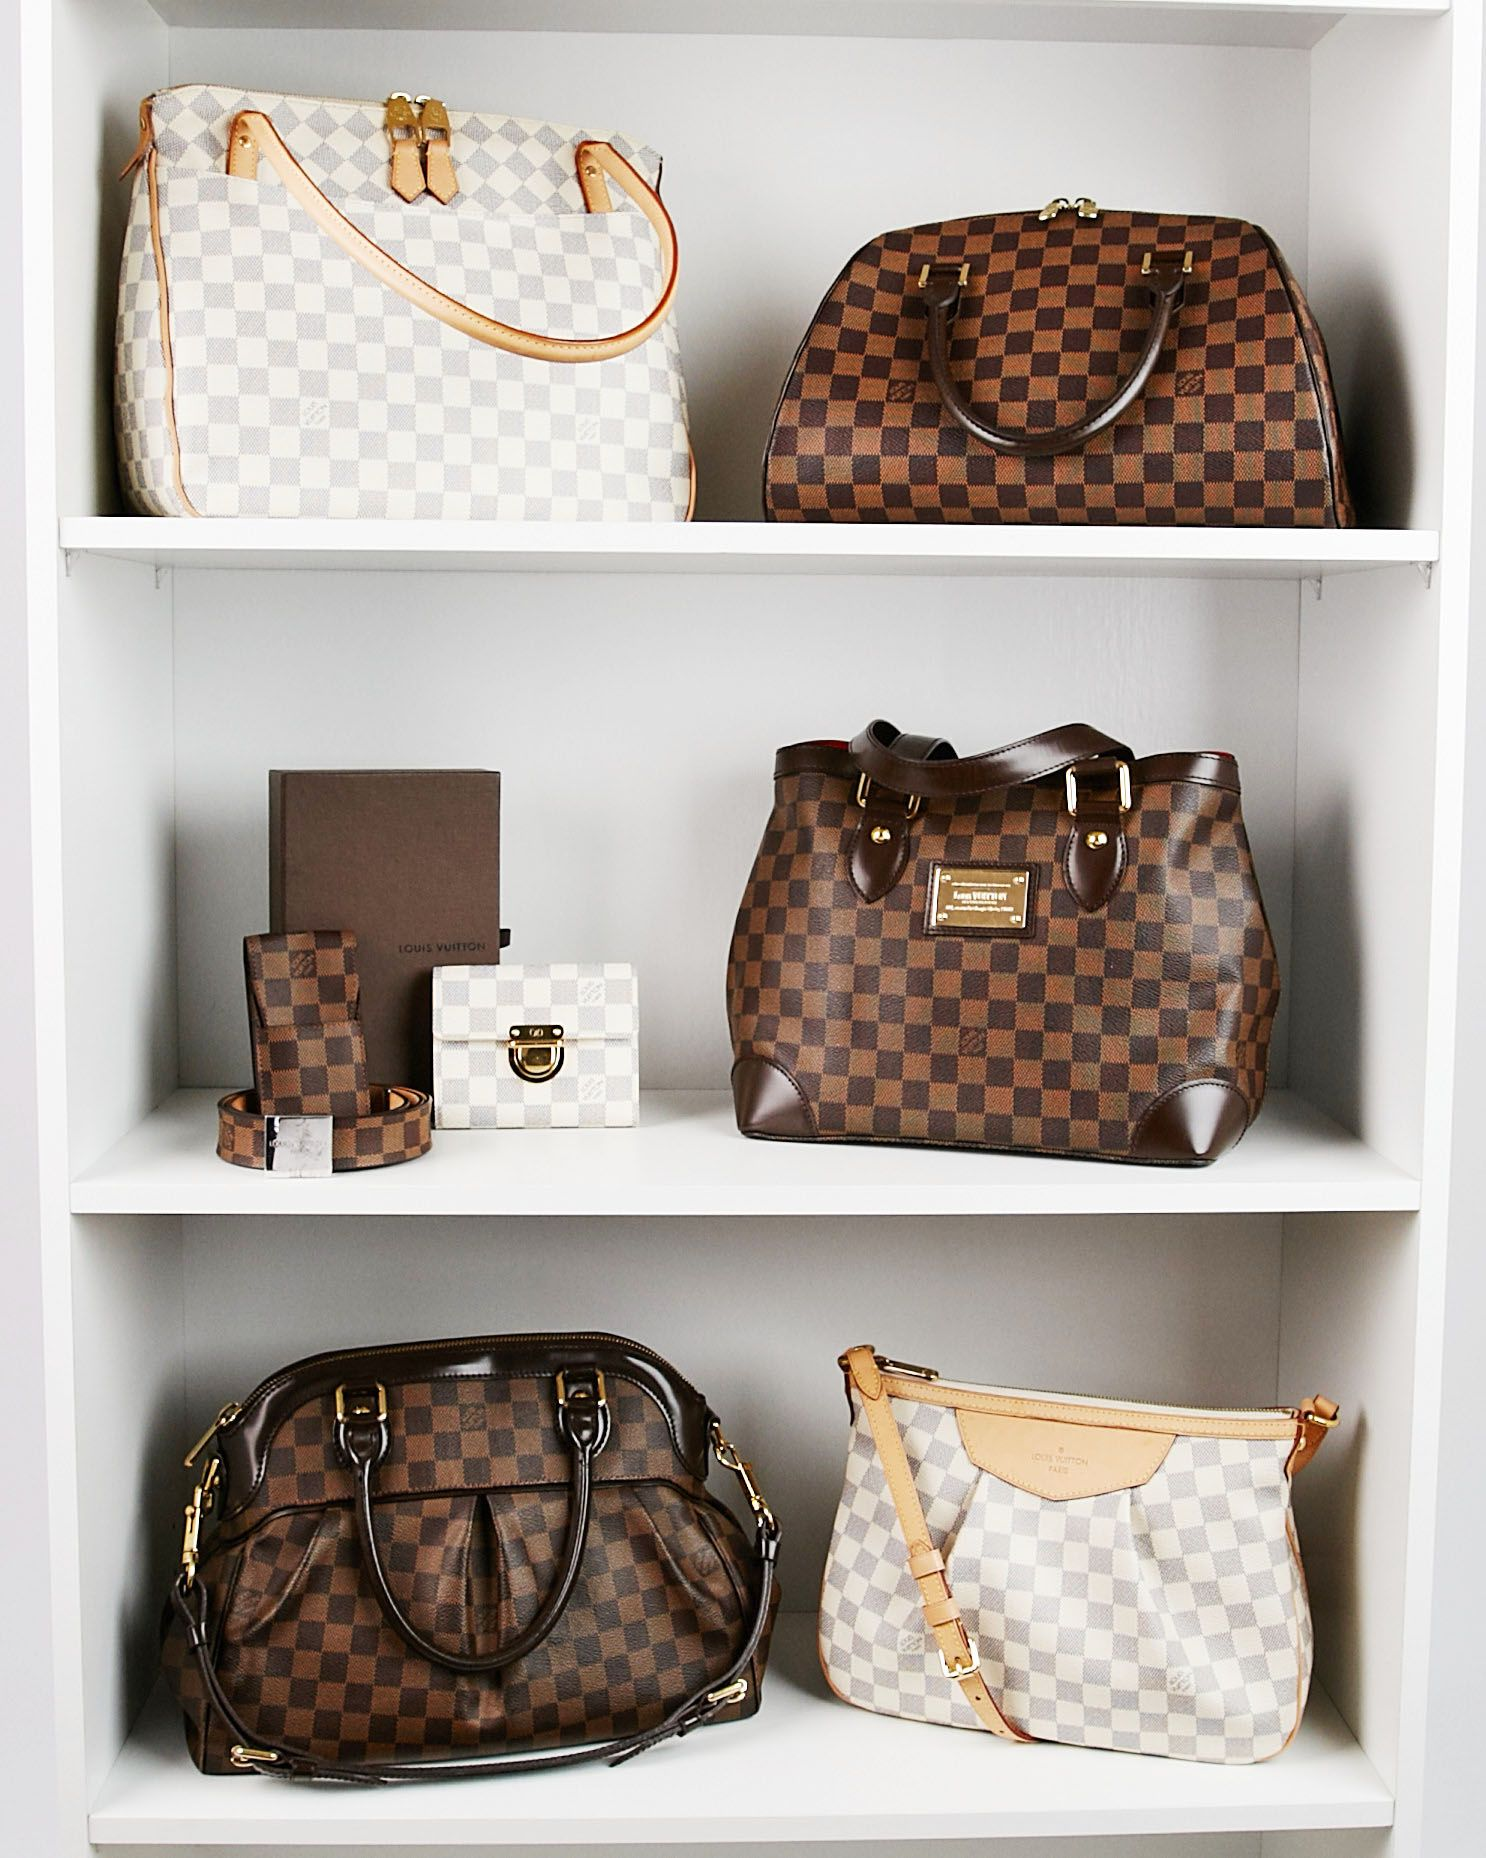 07e769bd8a33 Sell us your pre-loved luxury goods! - Yoogi s Closet